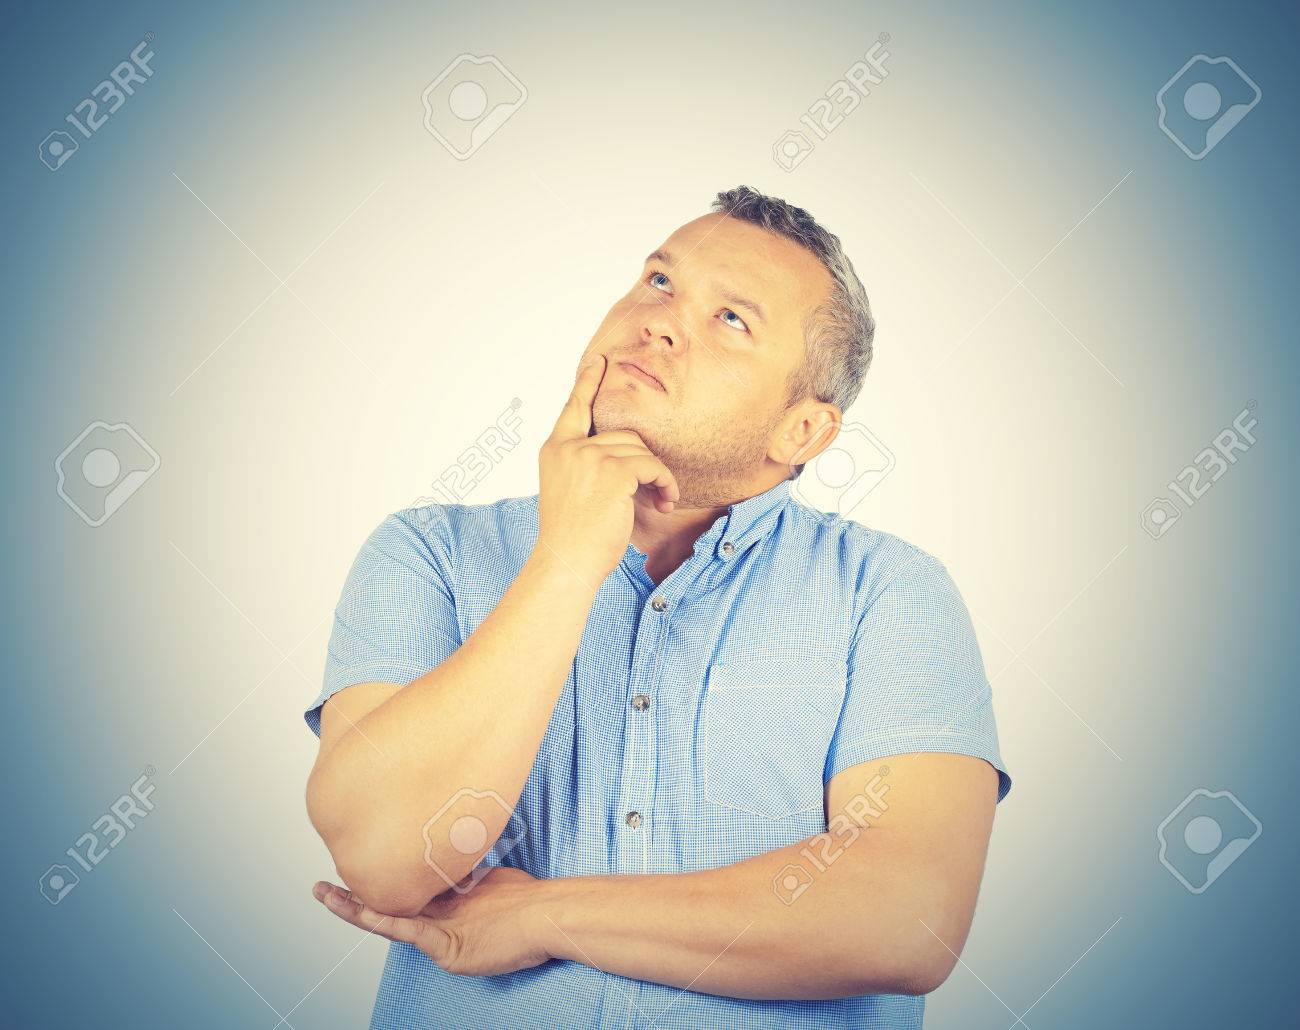 Fat Man Chin On Hand Thinking Daydreaming Staring Thoughtfully Upwards Stock Photo